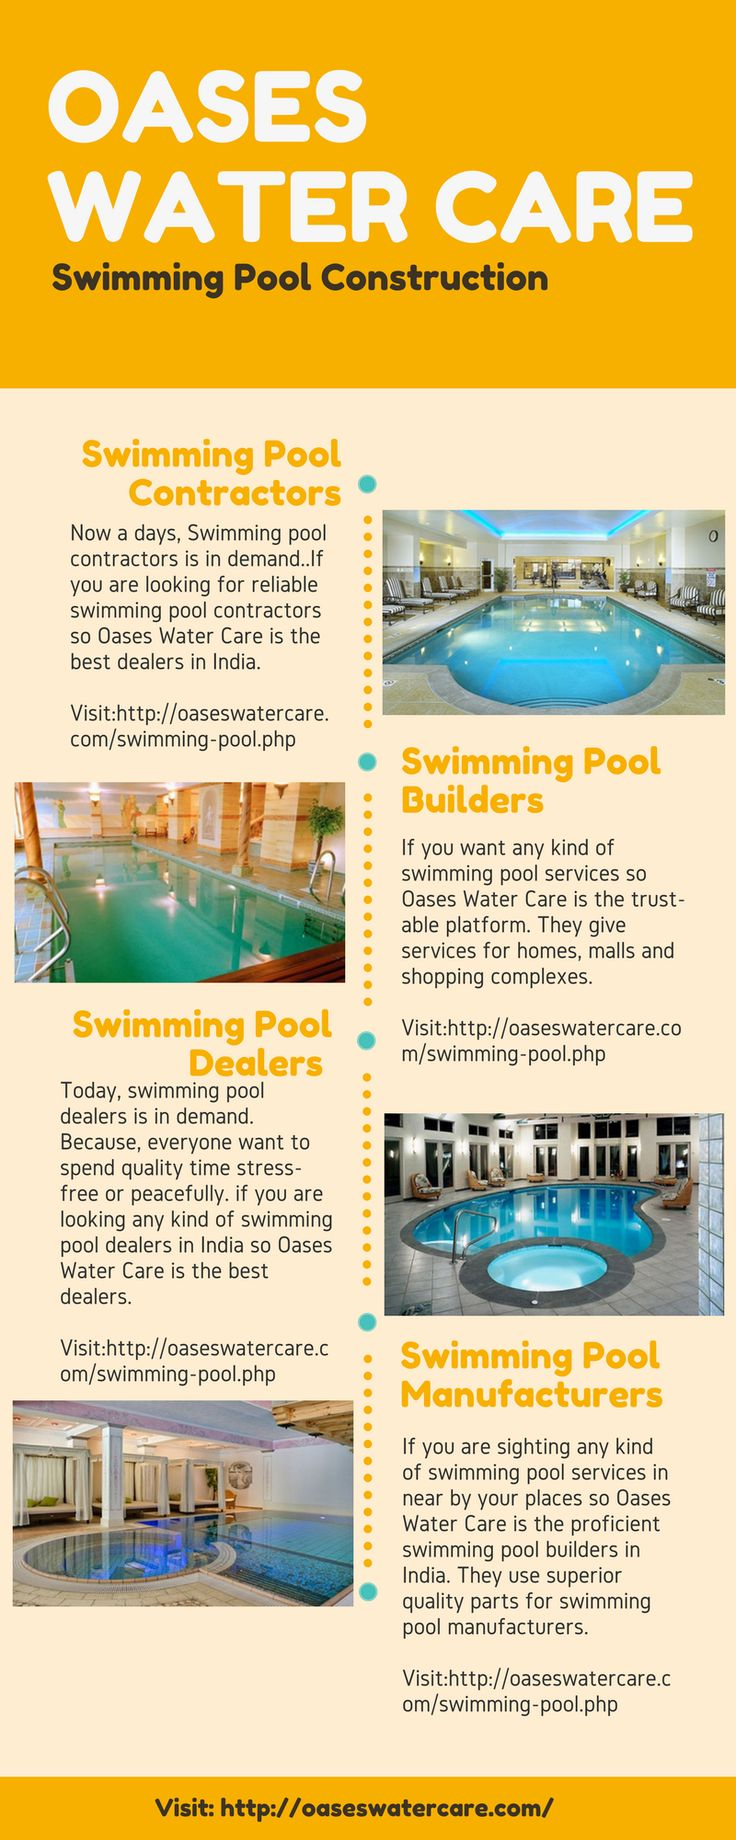 17 best ideas about swimming pool construction on - Swimming pool equipment manufacturers ...